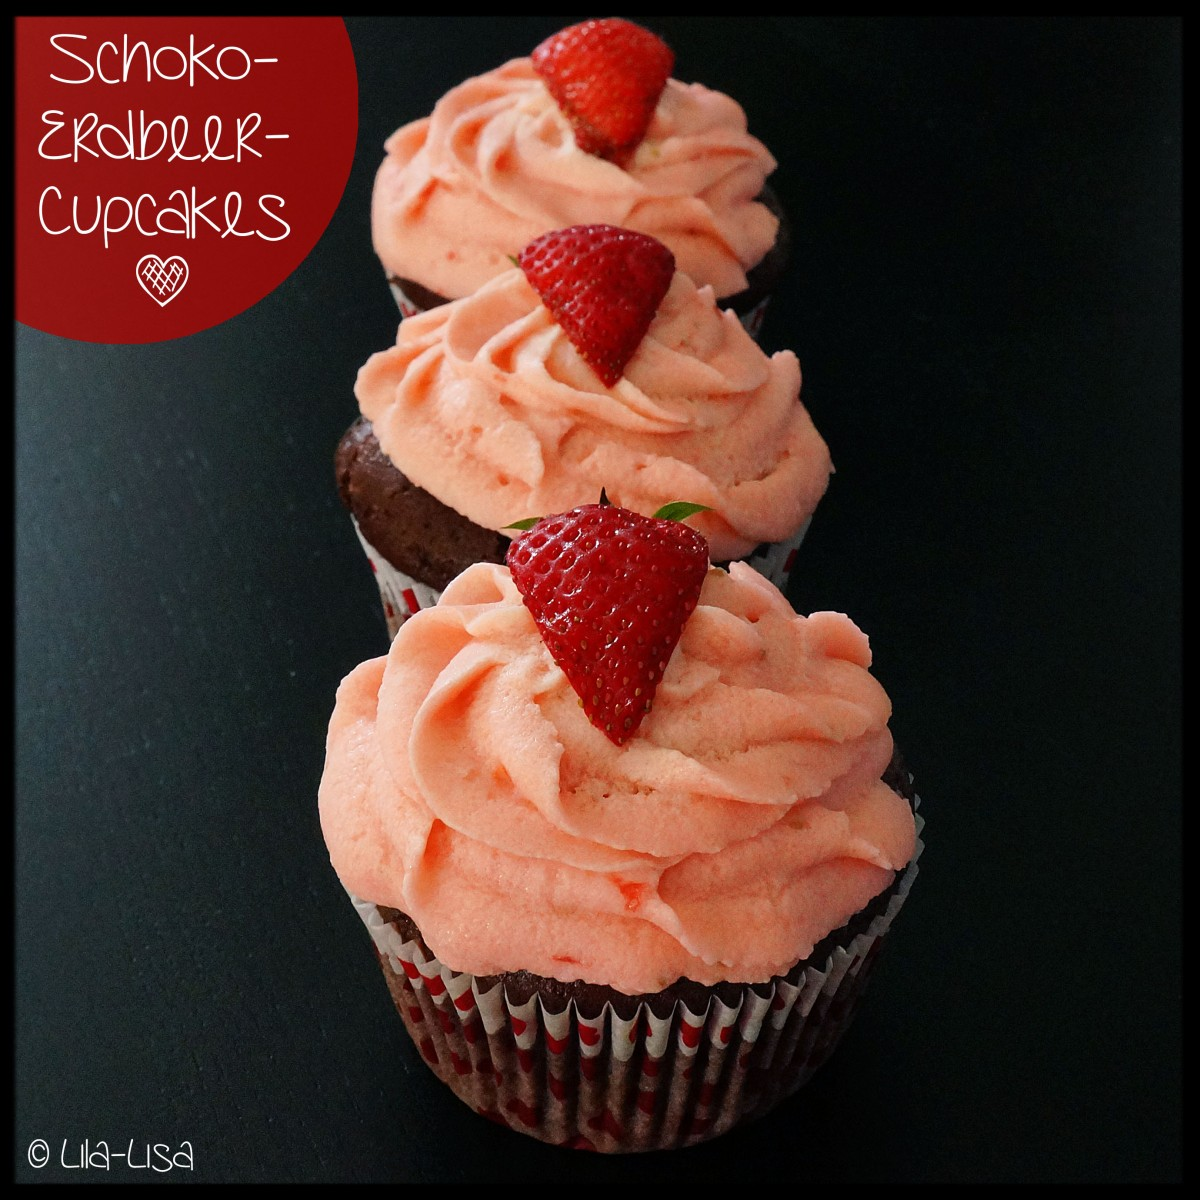 Happy Berry: Schoko-Erdbeer-Cupcakes